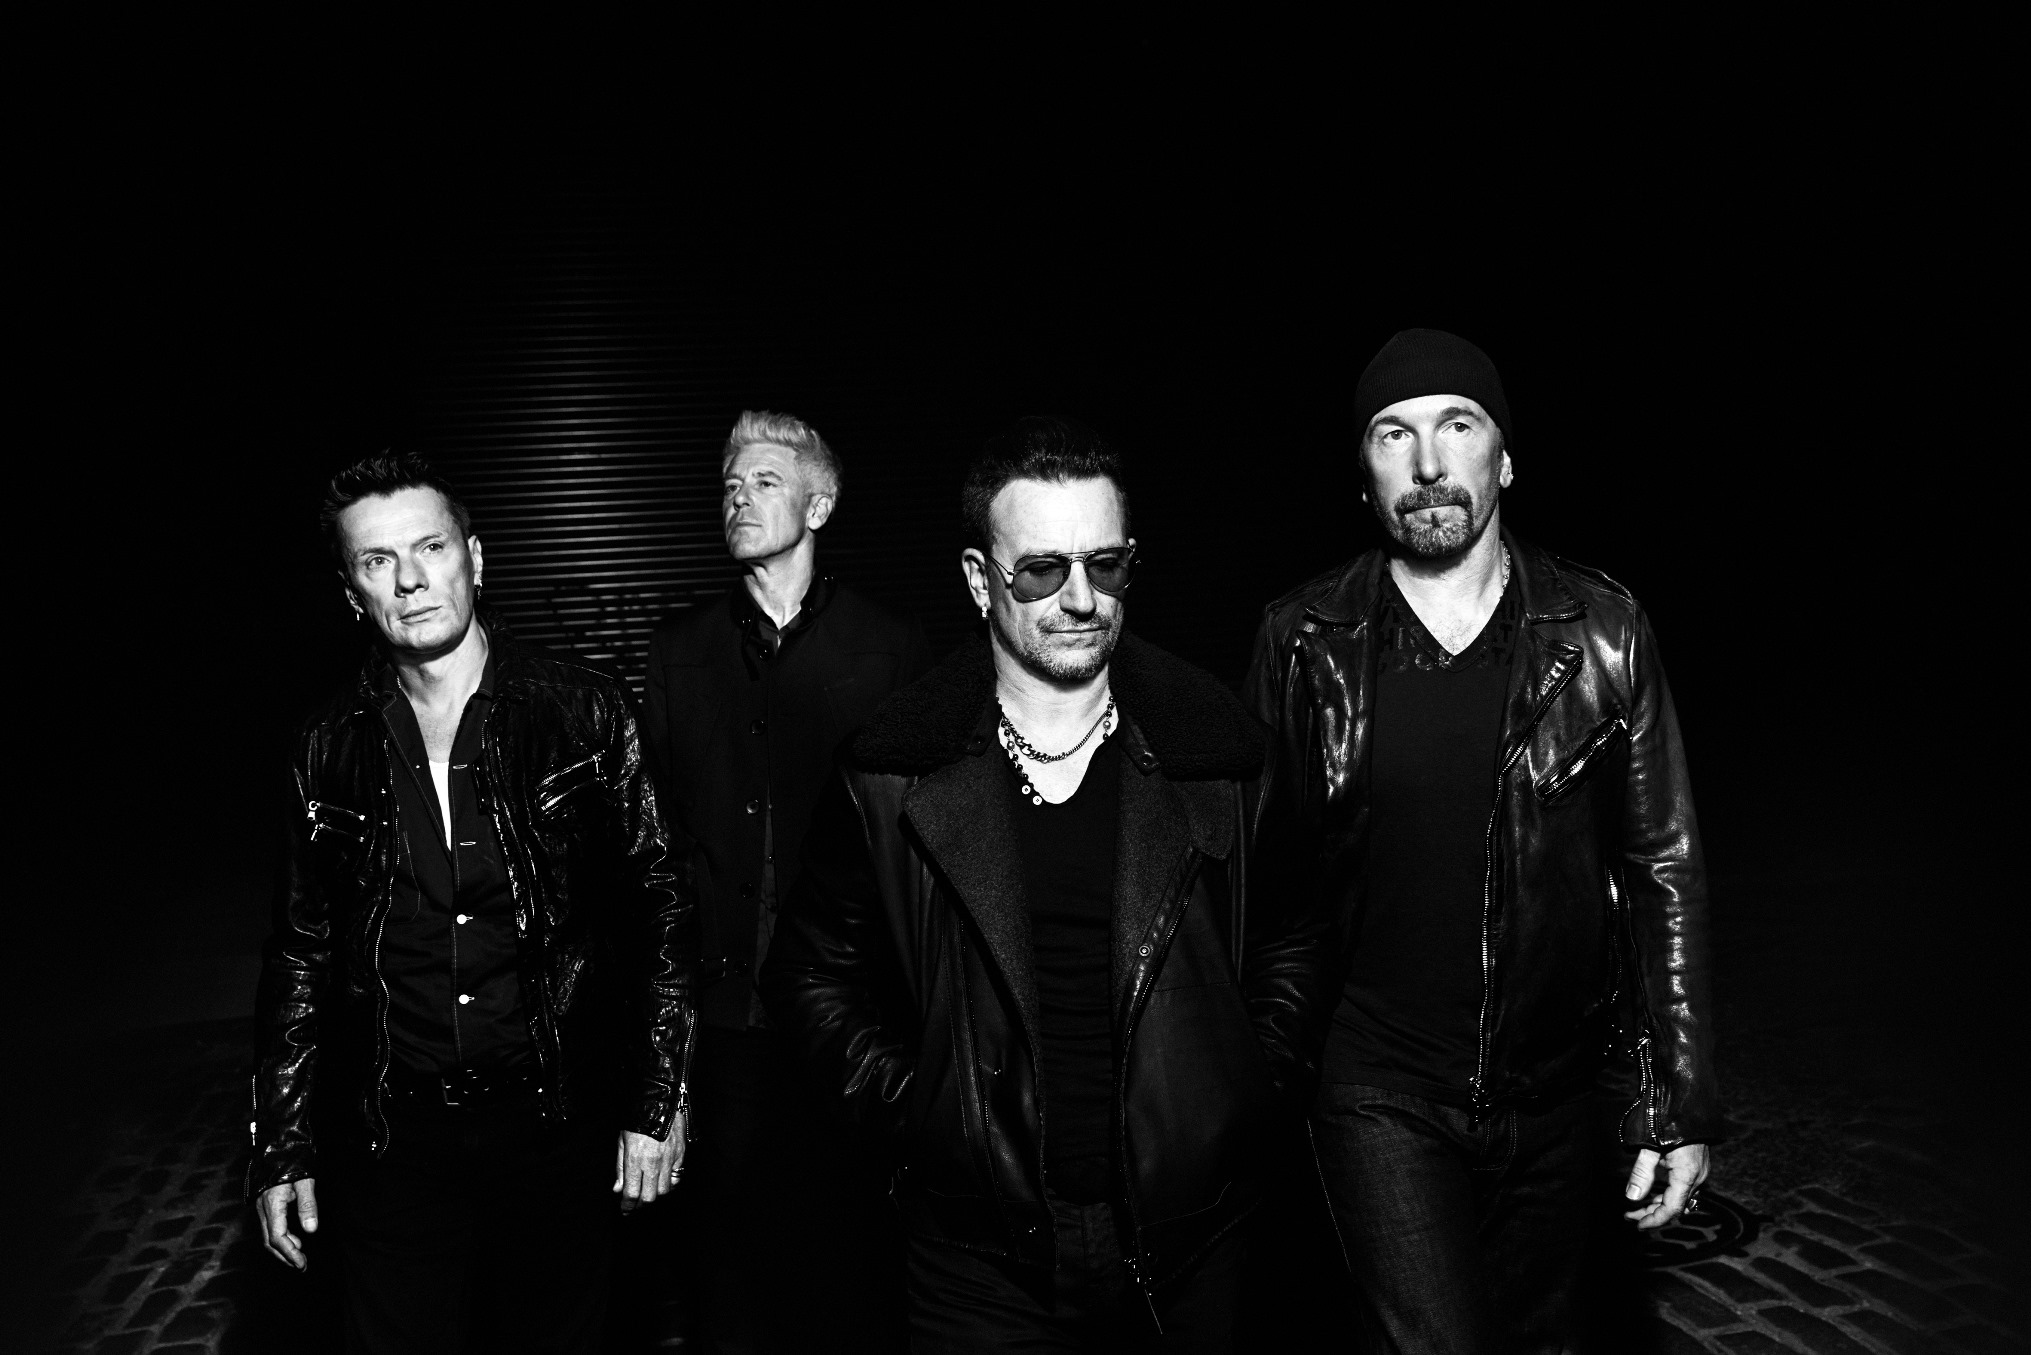 U2-show-in-Sweden-is-cancelled